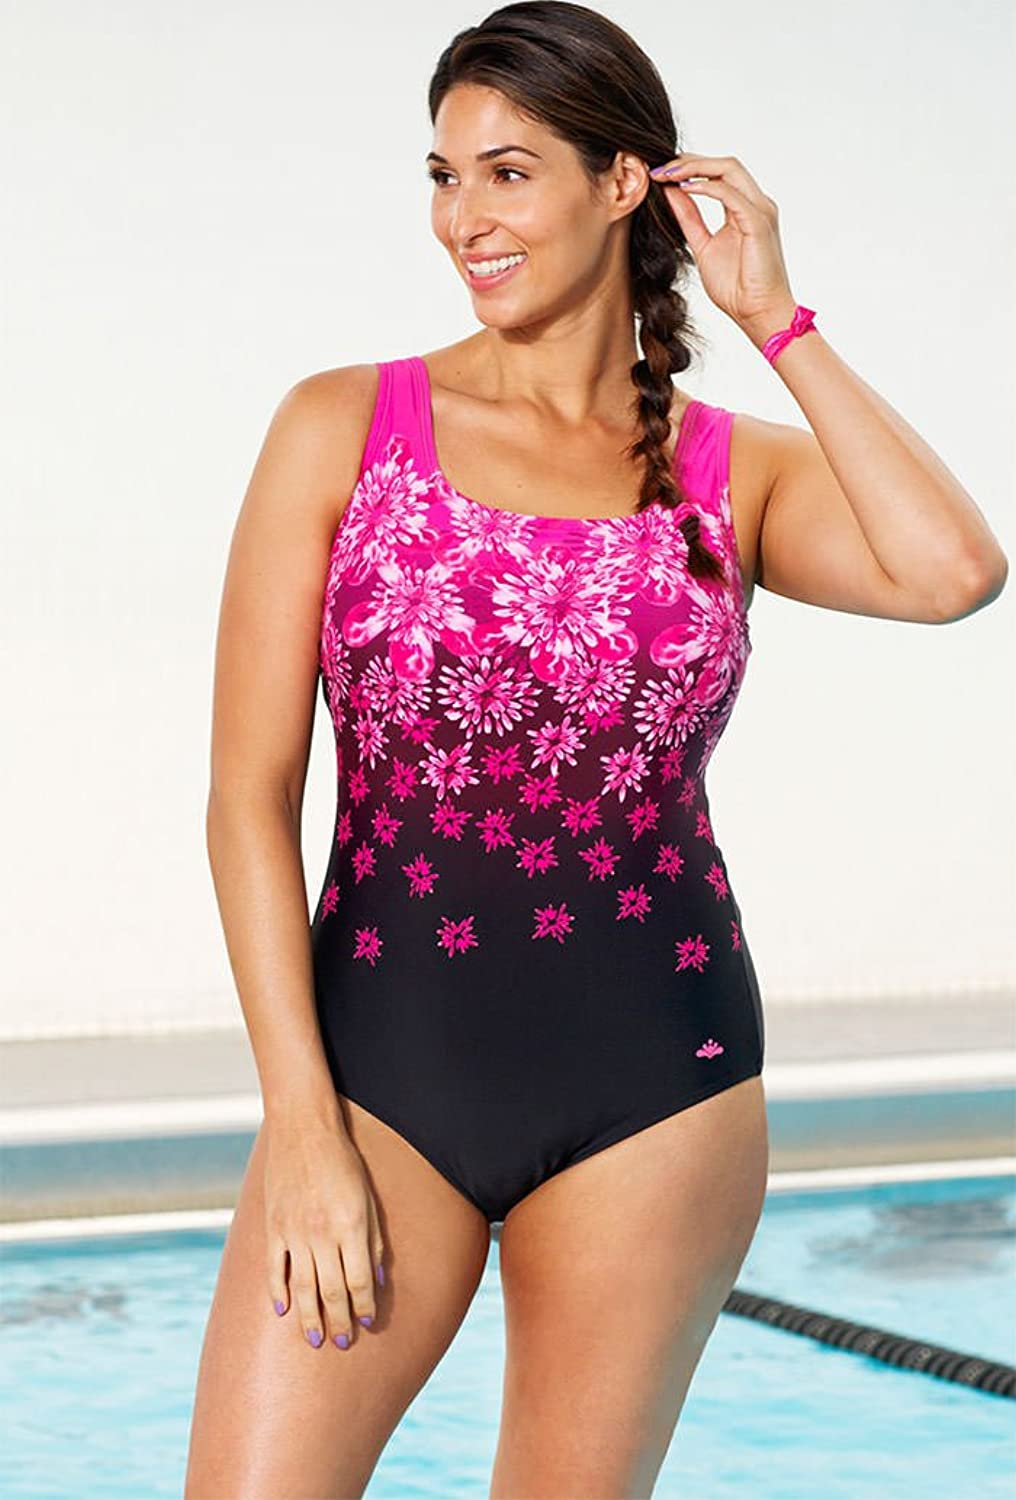 Aquabelle Women's Exploded Floral Tank Swimsuit